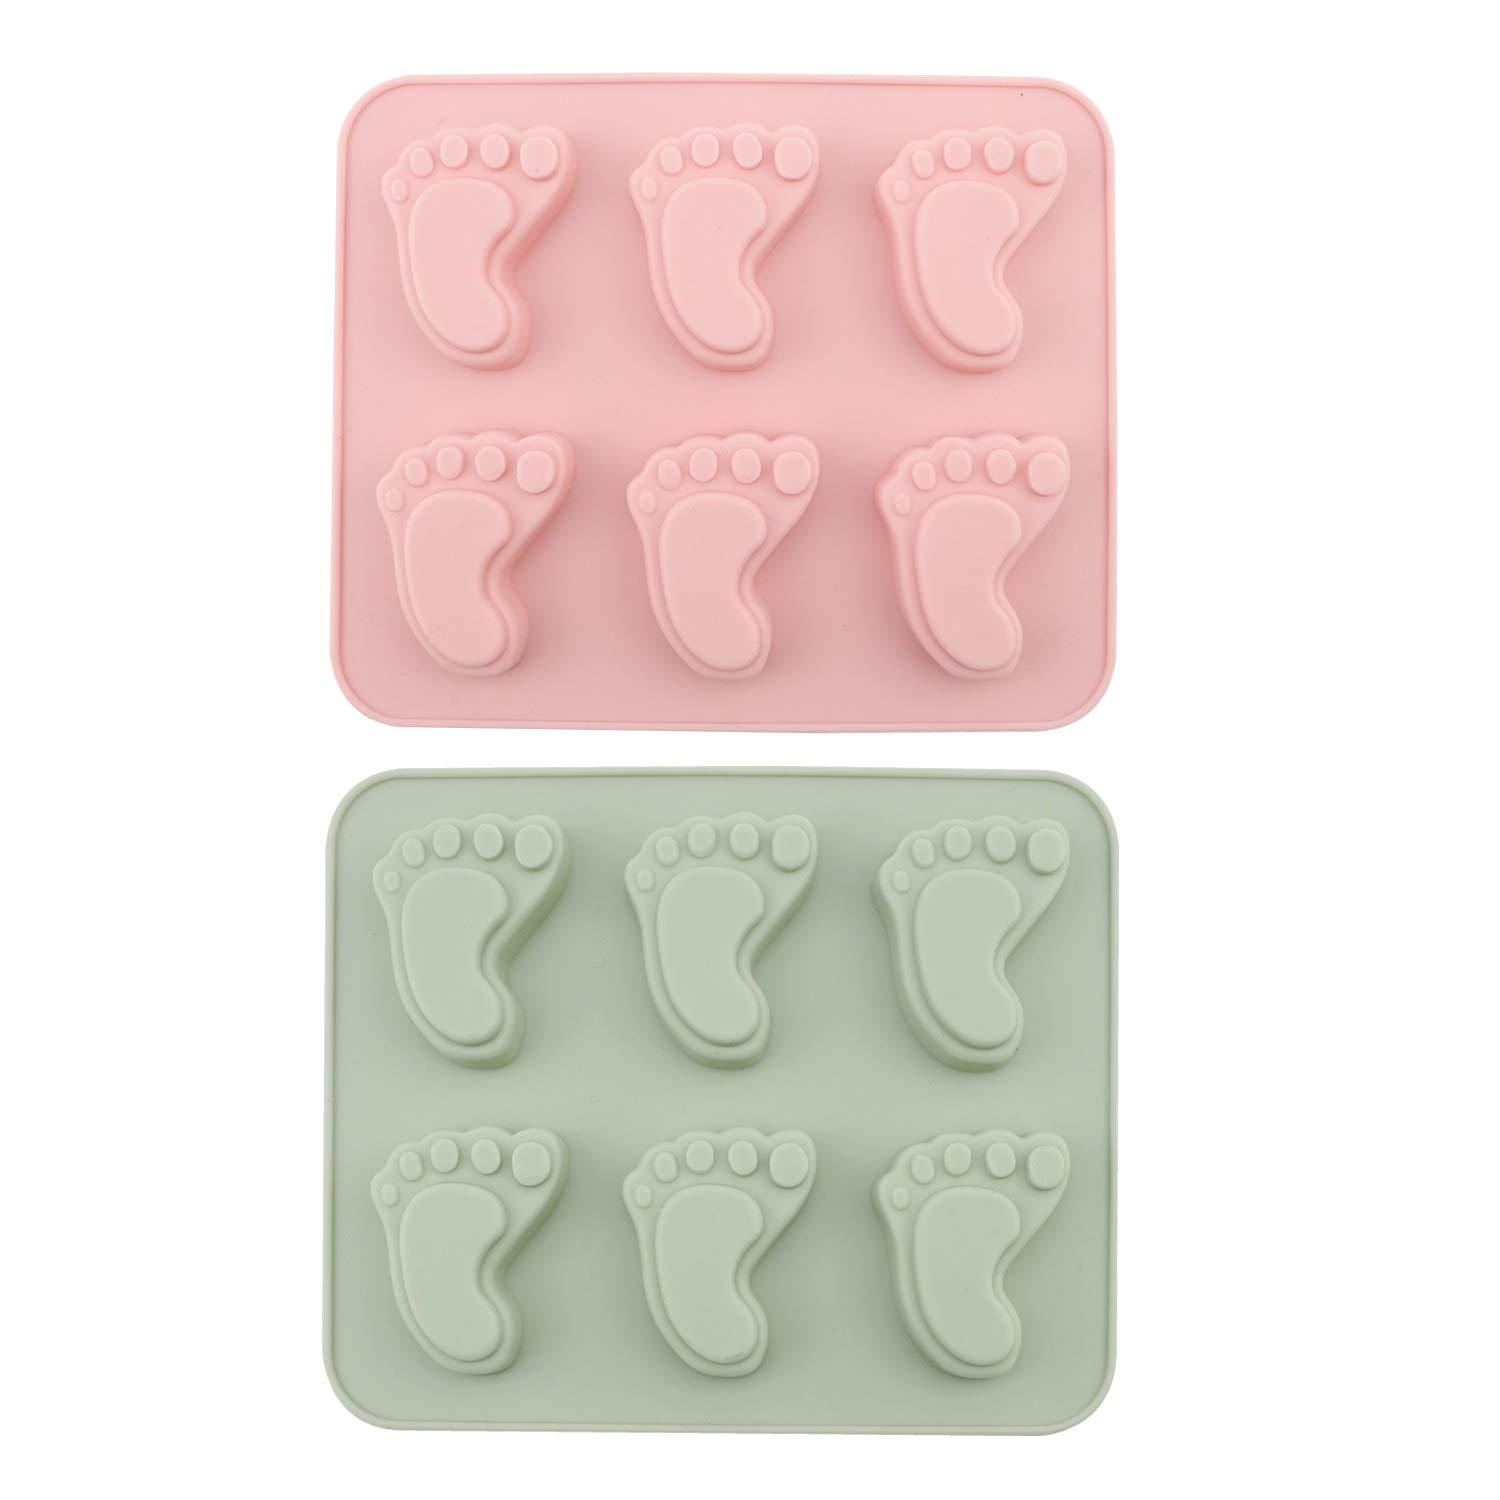 Chocolate Mold, Chokov 2Pcs Baby Footprint Molds Foot Step Silicone Fondant molds for Baby Shower Birthday Cake Decoration Gumpaste Candy Soap Cupcake Topper Decorating